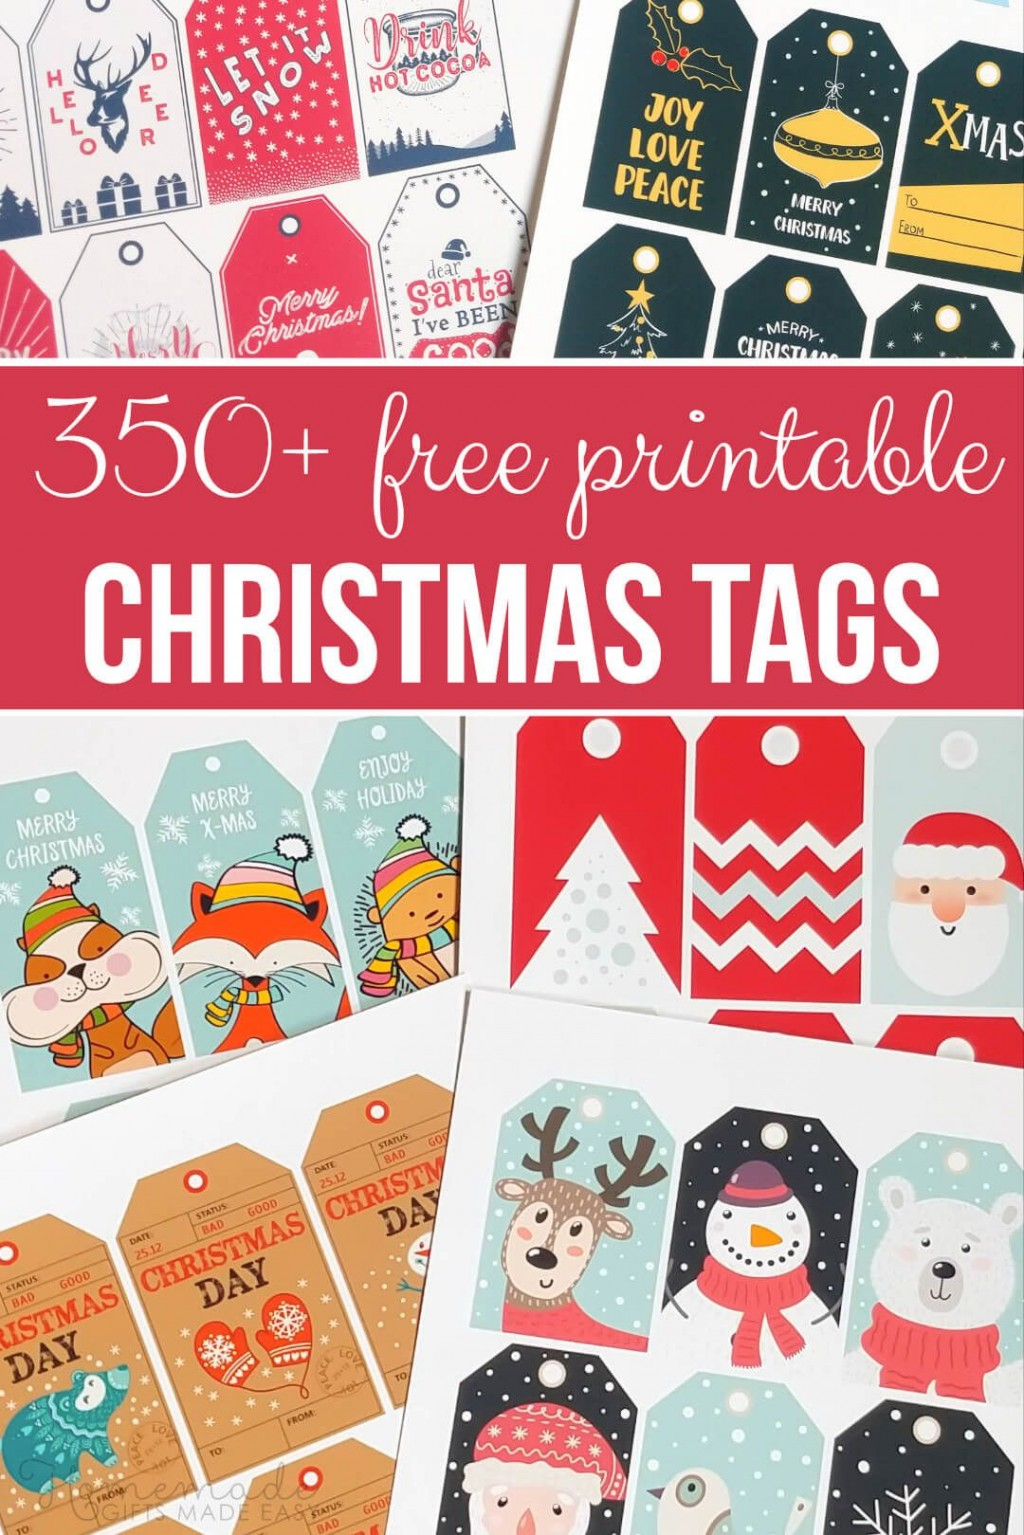 009 Fascinating Christma Label Template Free High Def  Present Gift Tag Editable MailingLarge